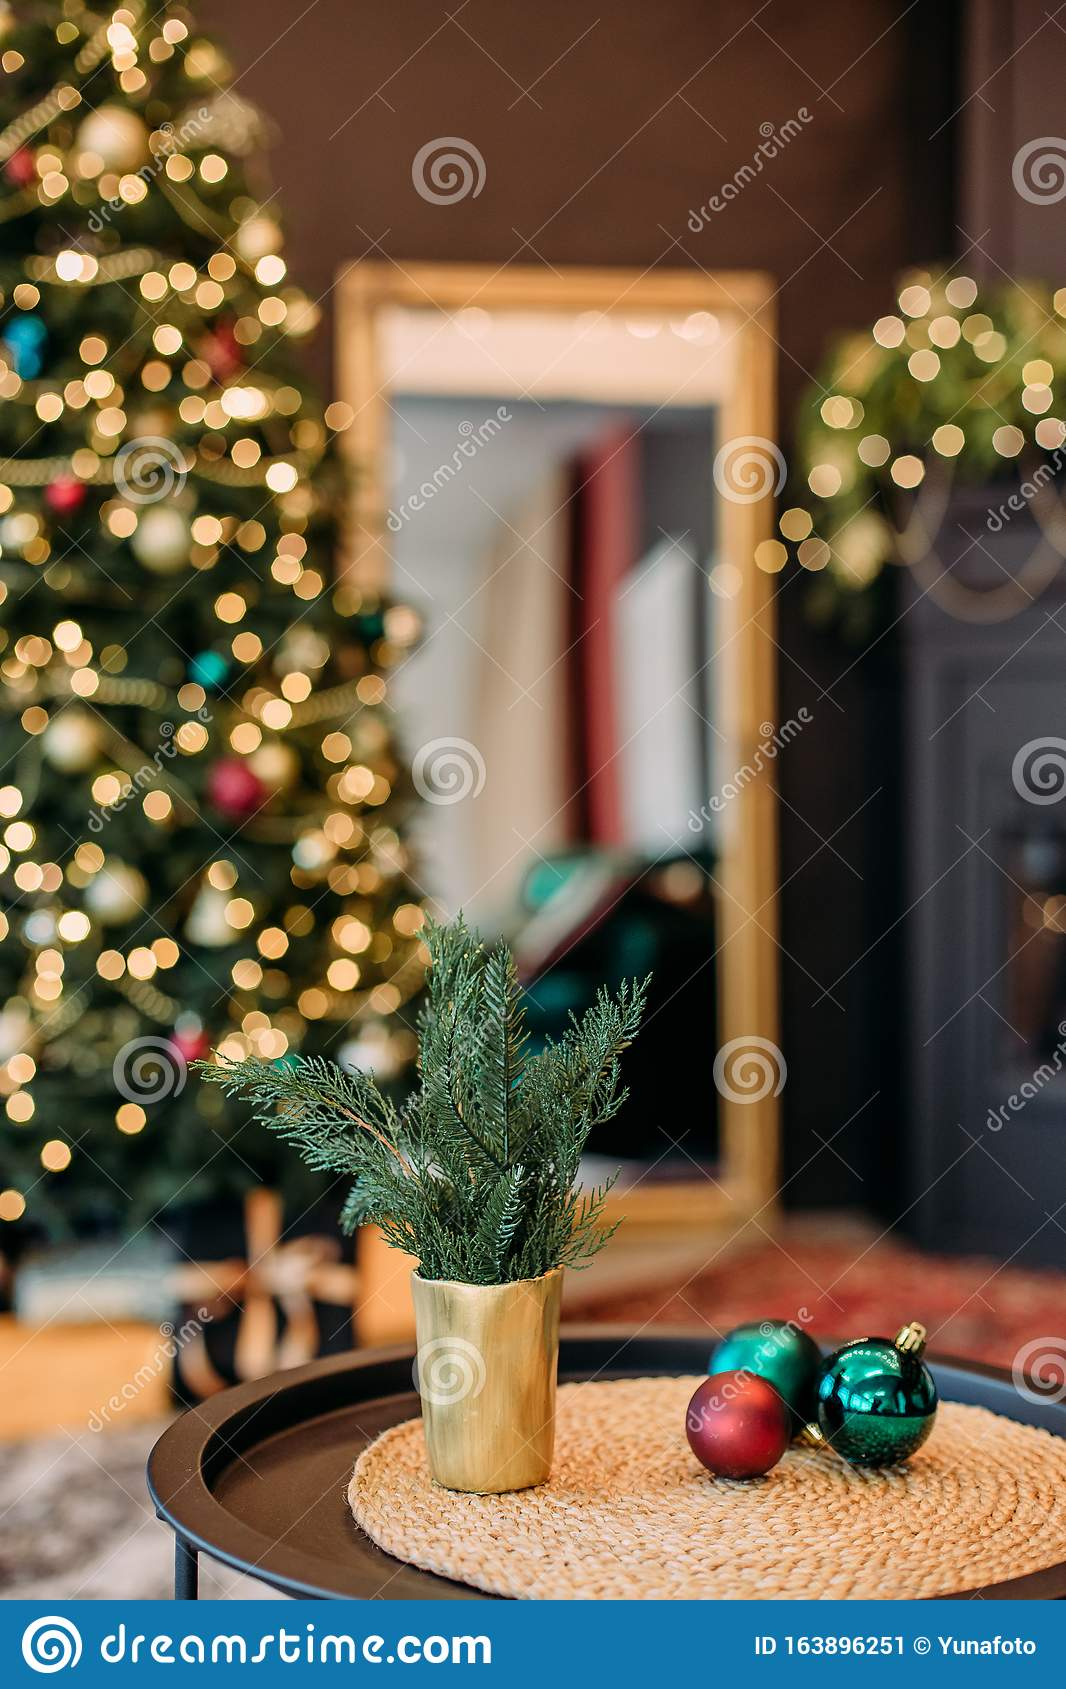 Interior Exquisite Black Gold Fireplace Christmas Tree Stock Image Image Of Symbol Design 163896251